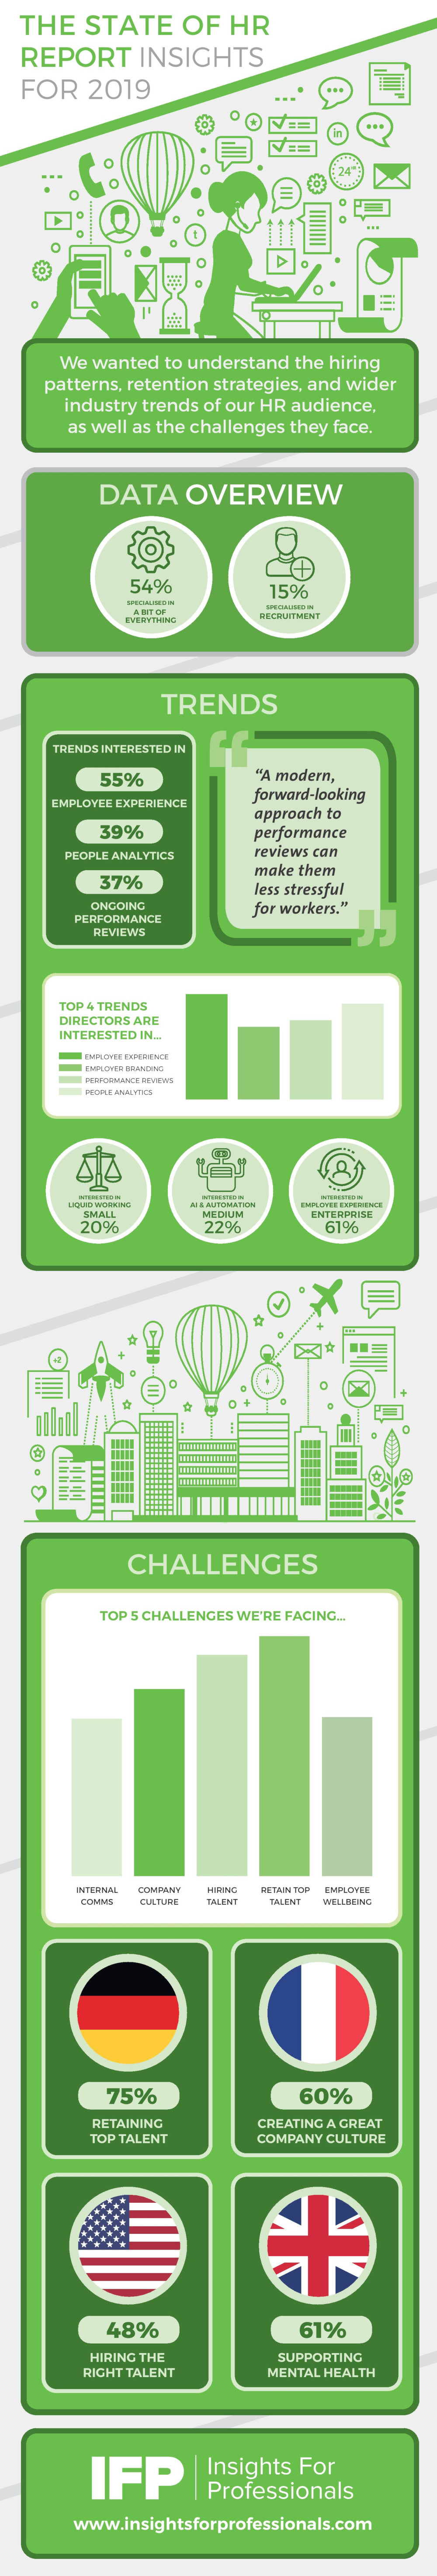 The State of HR Report Insights for 2019 Infographic - IFP